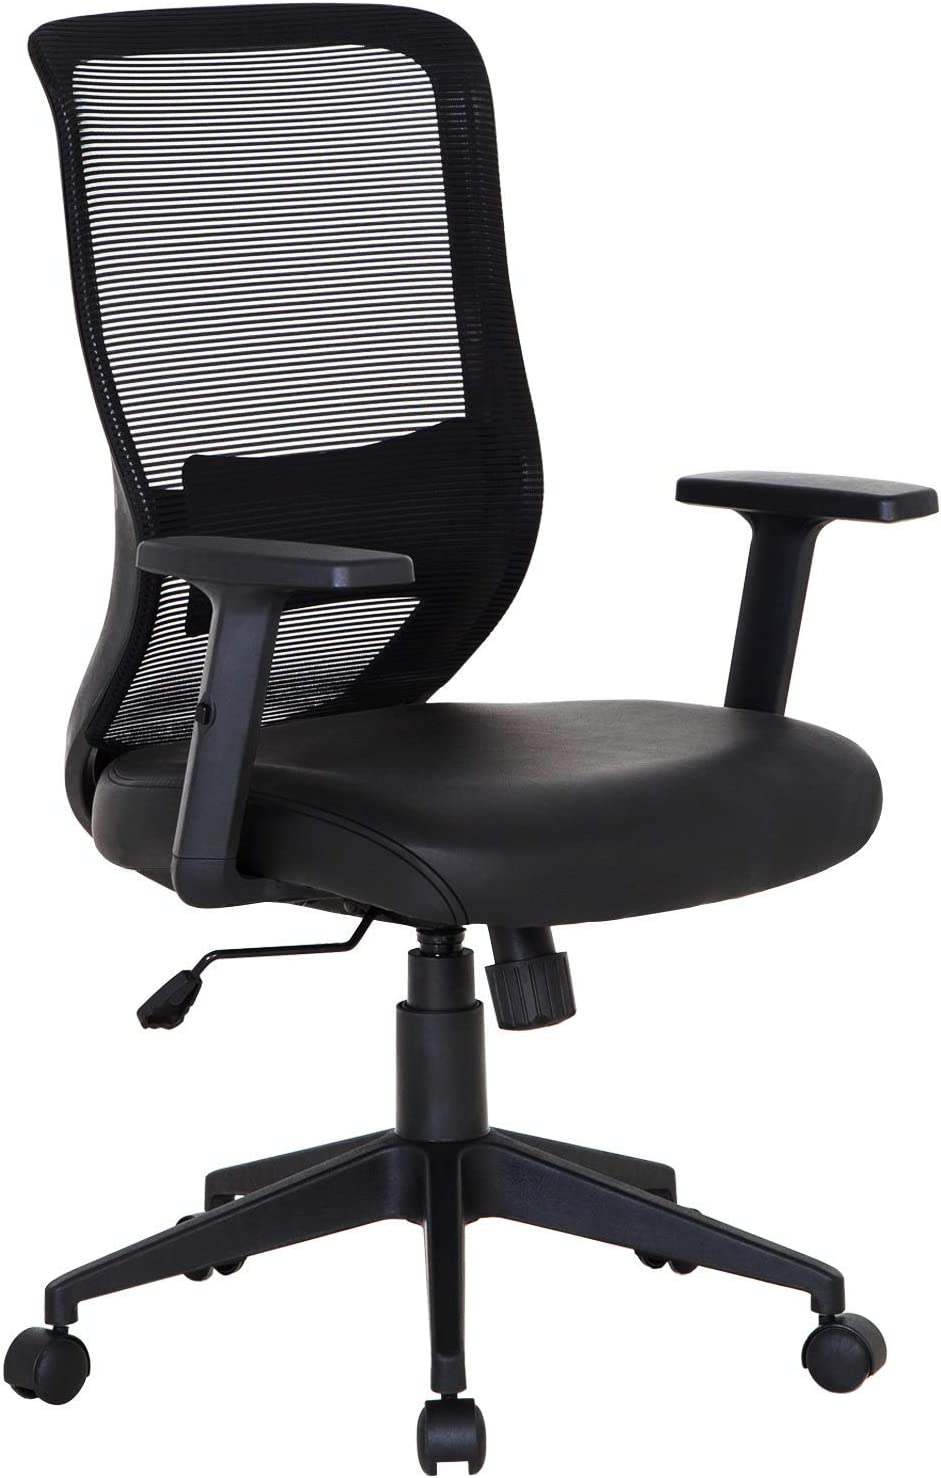 VECELO Office Computer Desk Chair with PU Padded Seat Cushion